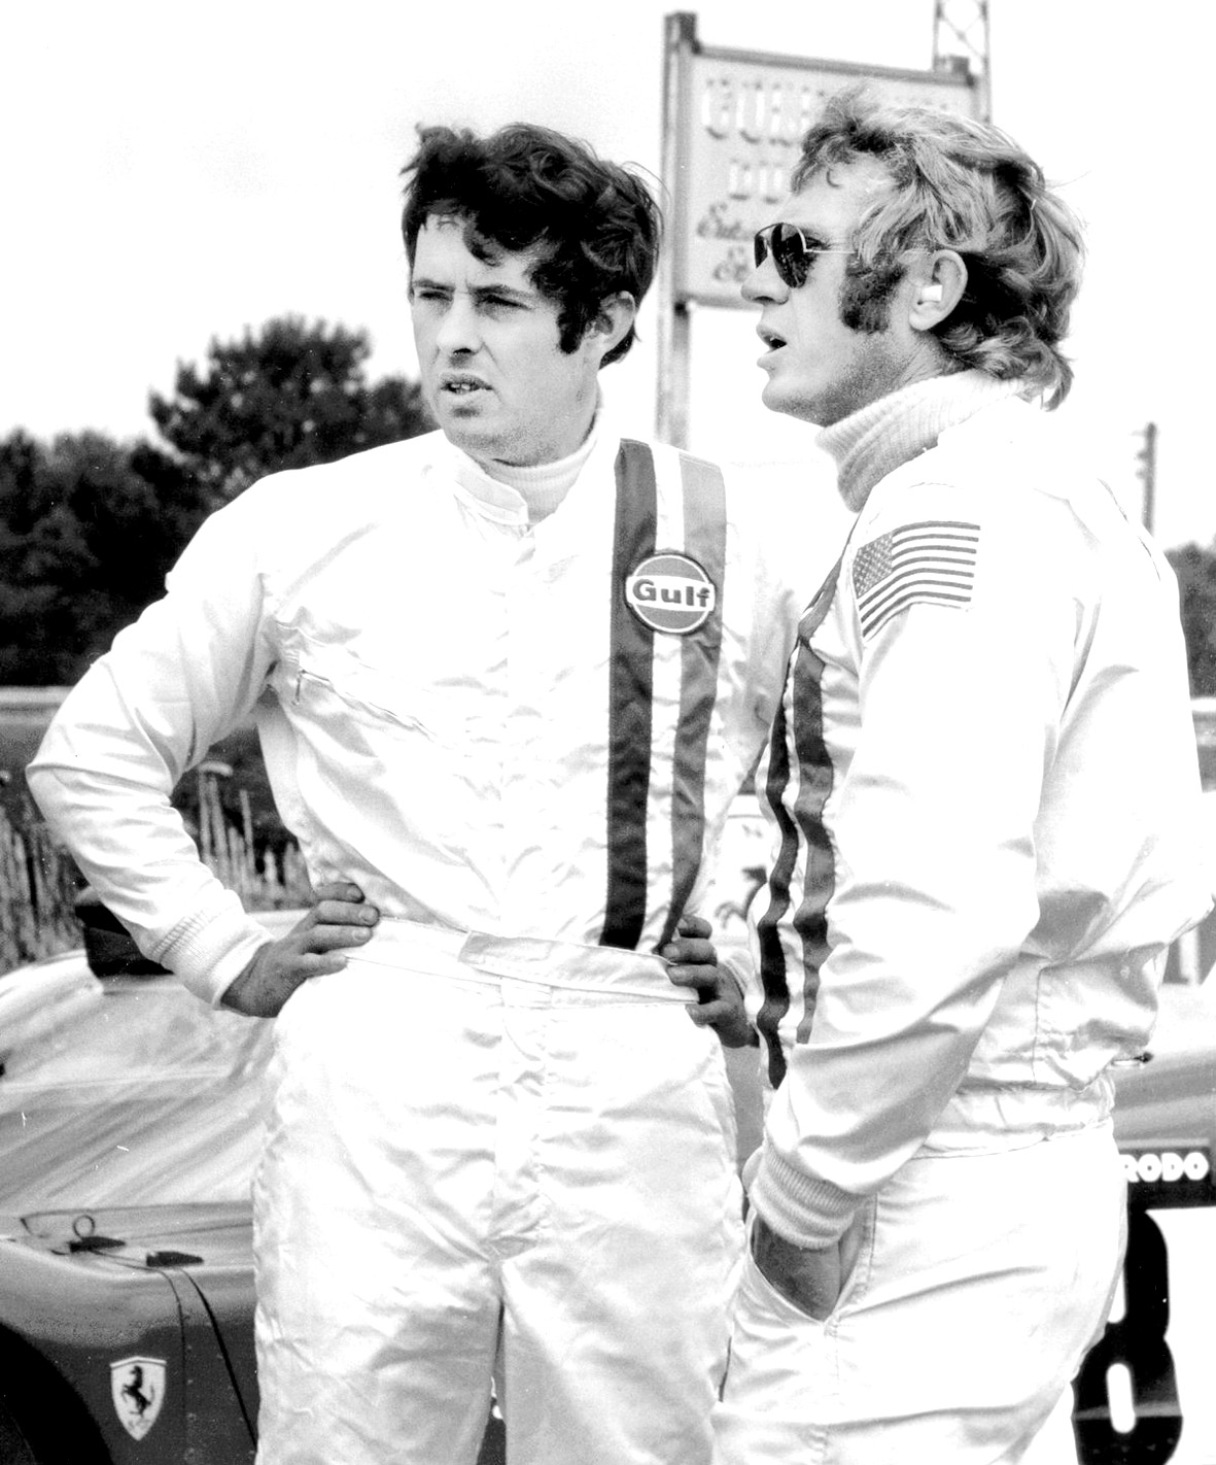 Brian Redman with Steve McQueen during filming of the movie 'Le Mans'